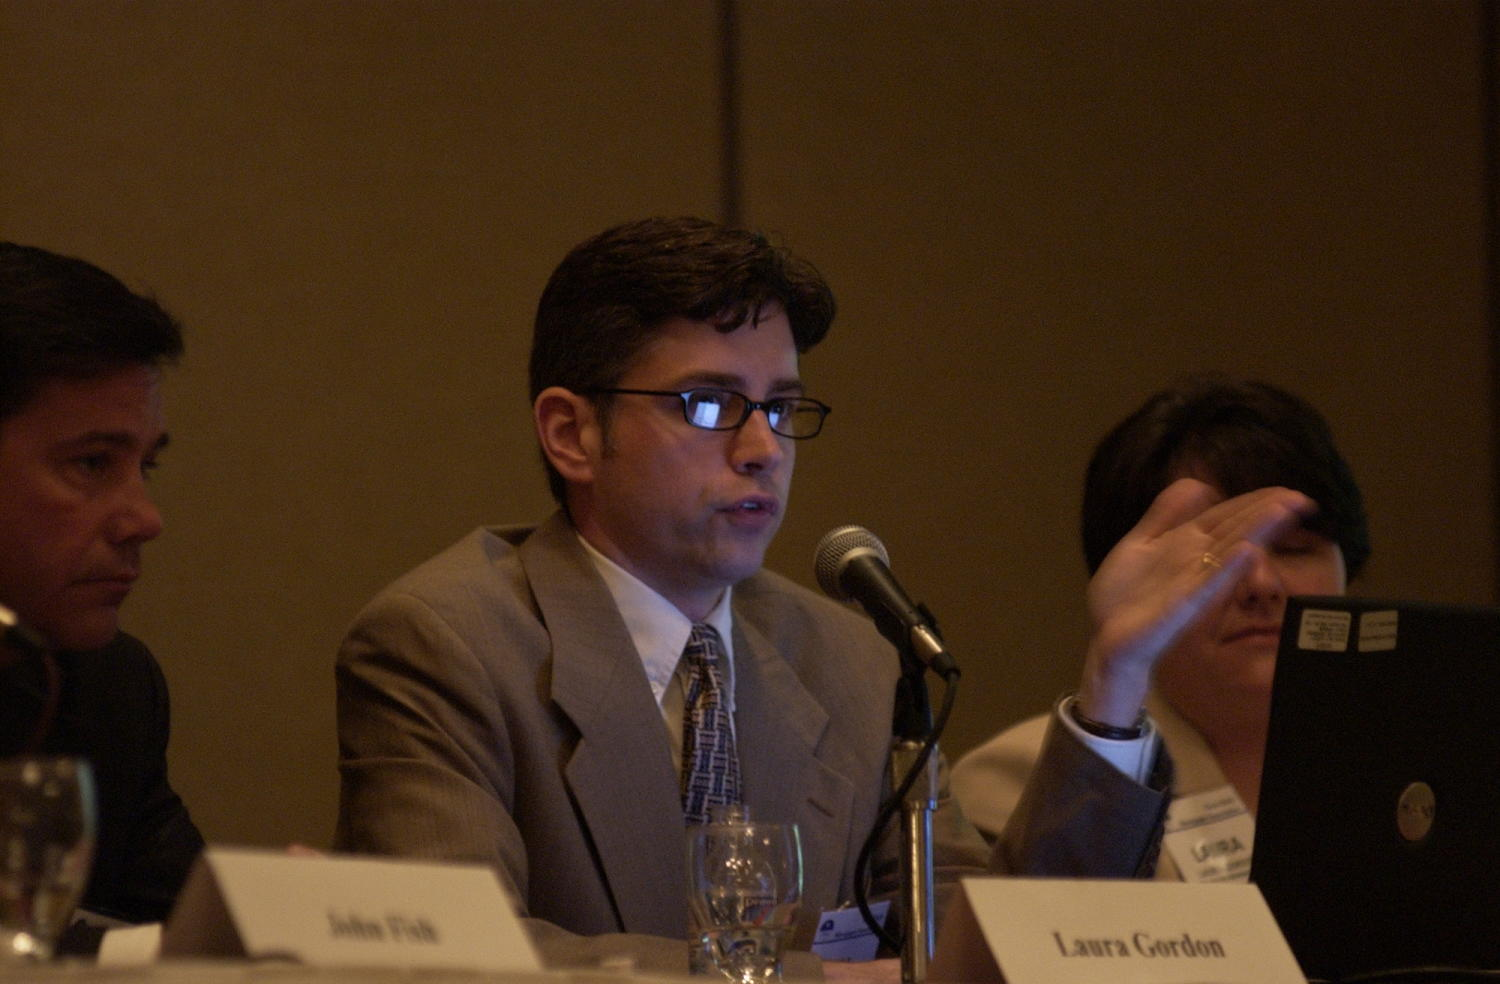 [Jim Lenahan giving a presentation at a TDNA conference, 2], Photograph of Jim Lenahan, a guest speaker attending the 2004 Texas Daily News Association annual conference held in Corpus Christi. Lenahan is seated behind a table and in front of a microphone addressing the audience of the conference as he gives a presentation.,